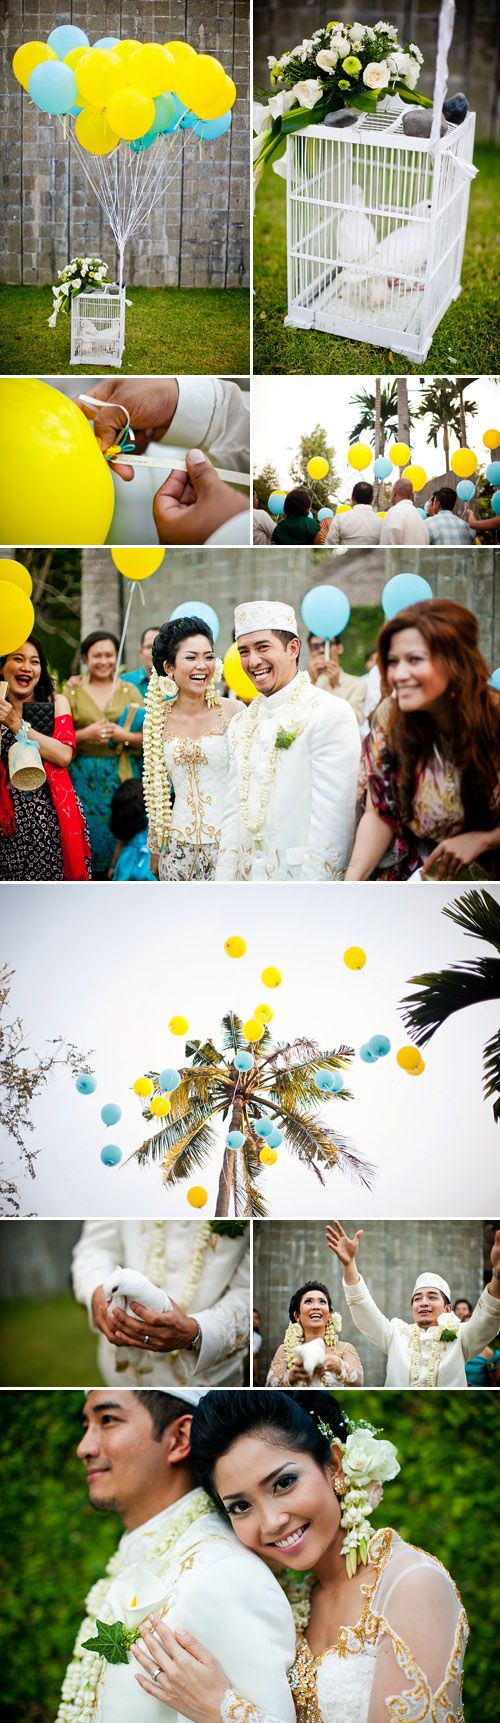 Traditional cultures but in a more modern, outdoor setting and in addition, also include the Balinese culture with the decor, balinese flower girls and umbrella boys. Designs based on the Indonesian folklore Rama and Shinta (invitations, party favors and figurines on the main table).